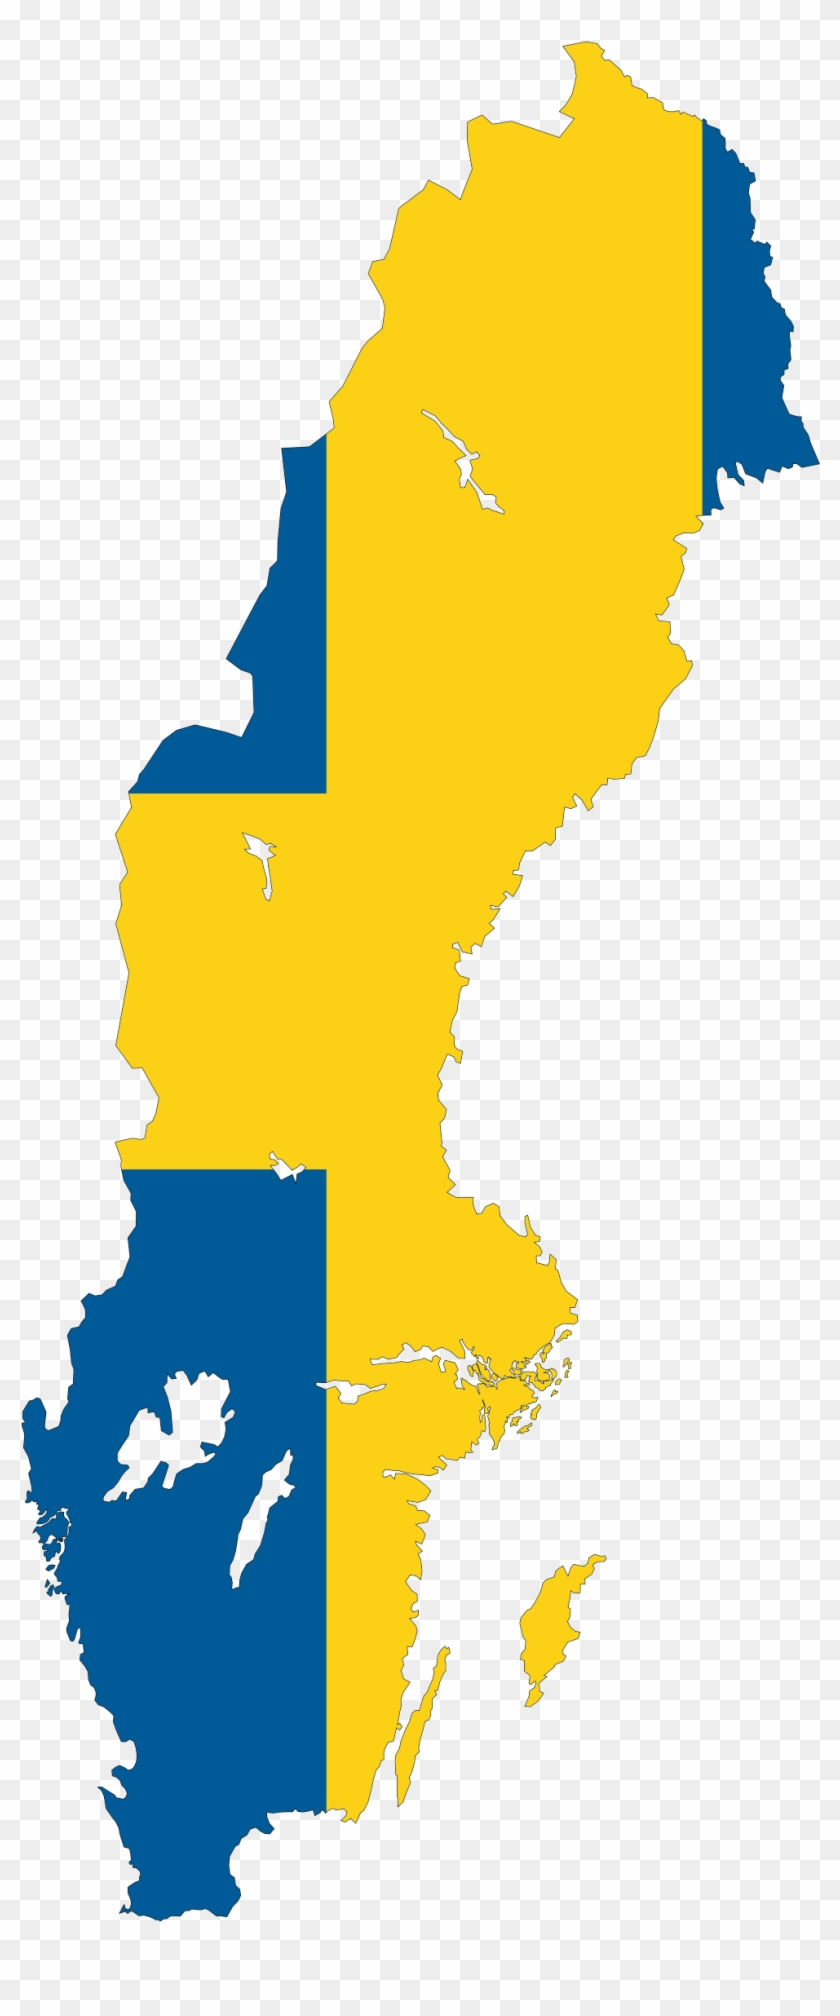 Clip Art Map - Sweden Country With Flag #9343